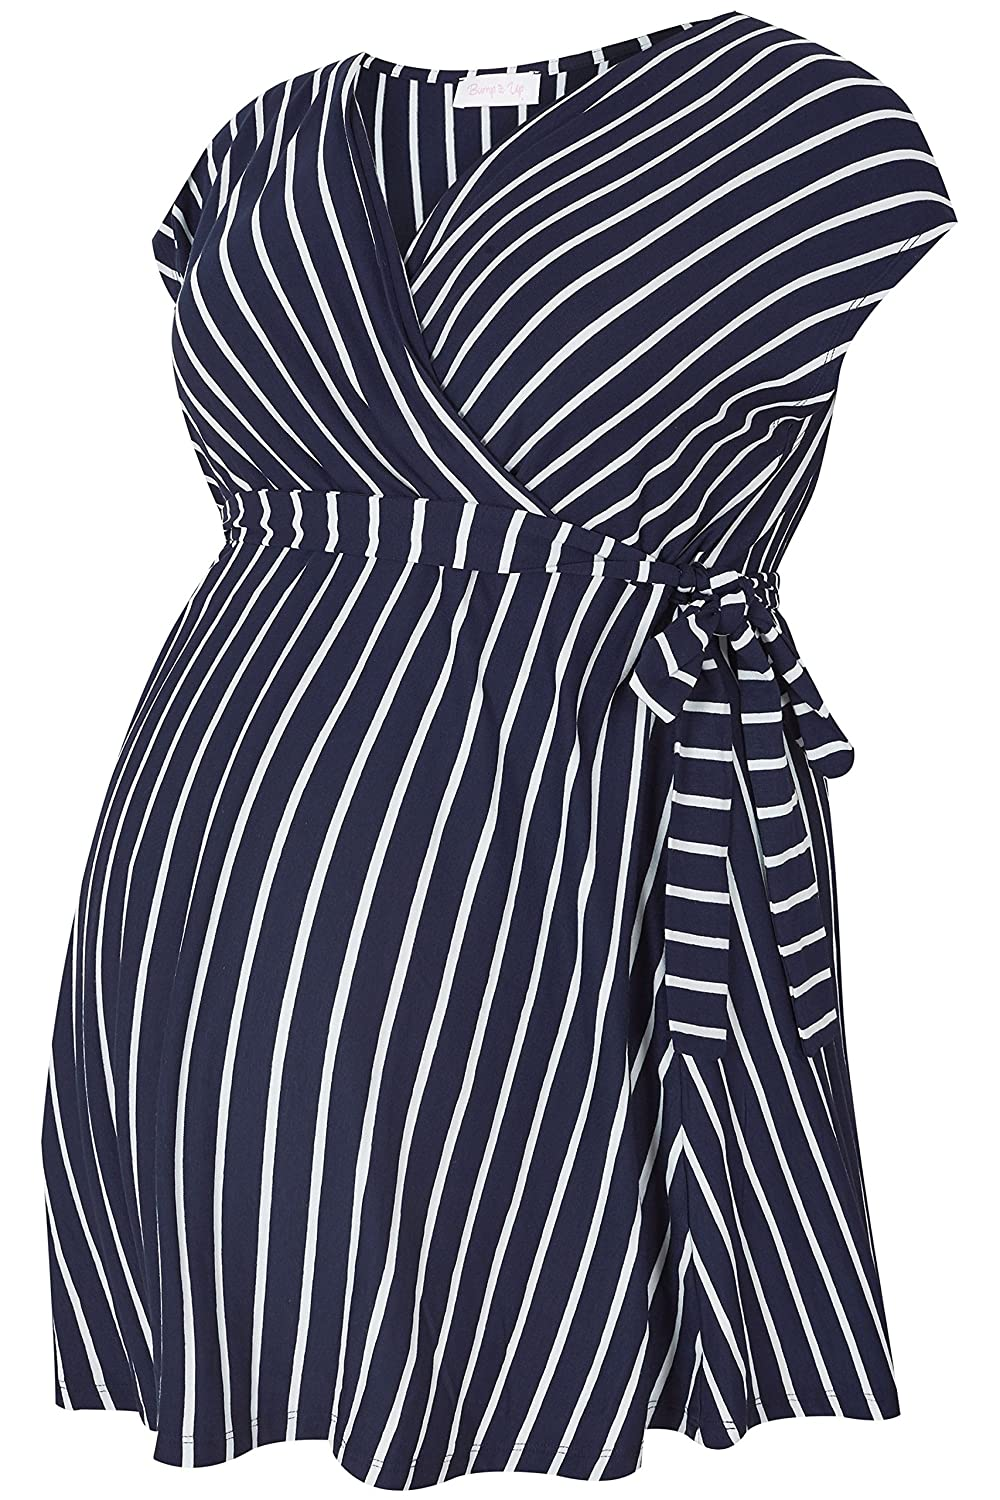 Yours Womens Plus Size Bump It Up Maternity Navy /& White Striped Wrap Top